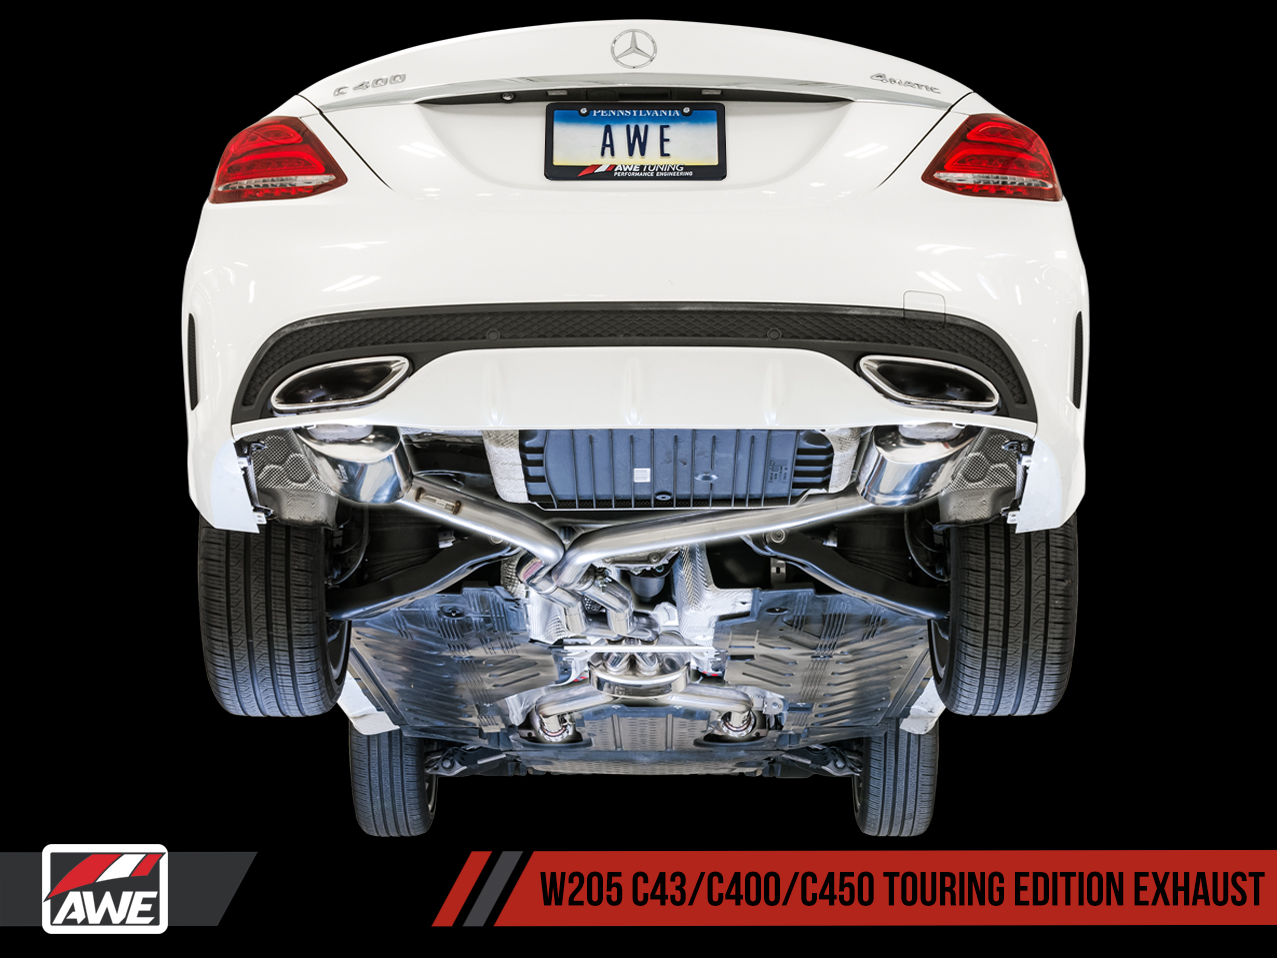 AWE Tuning Mercedes-Benz W205 AMG C43 / C400 / C450 Exhaust Suite